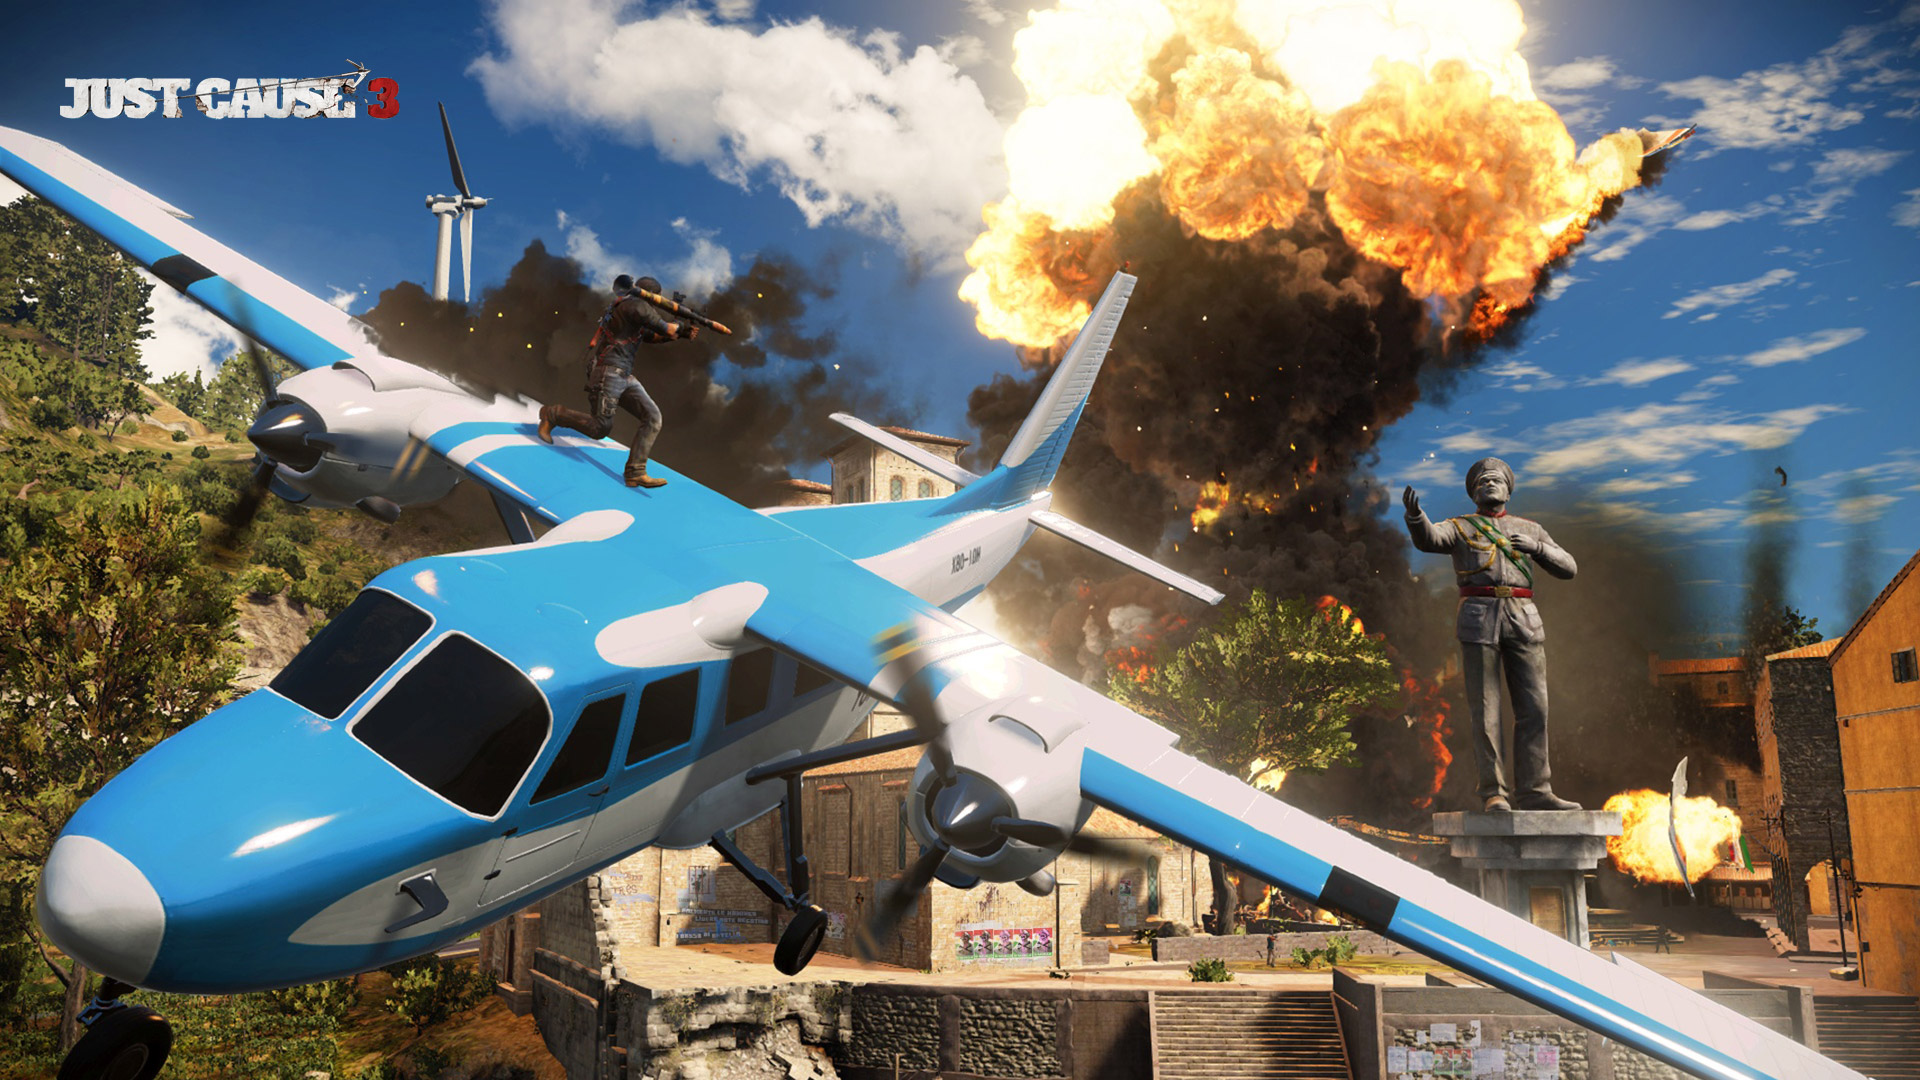 Free Just Cause 3 Wallpaper in 1920x1080